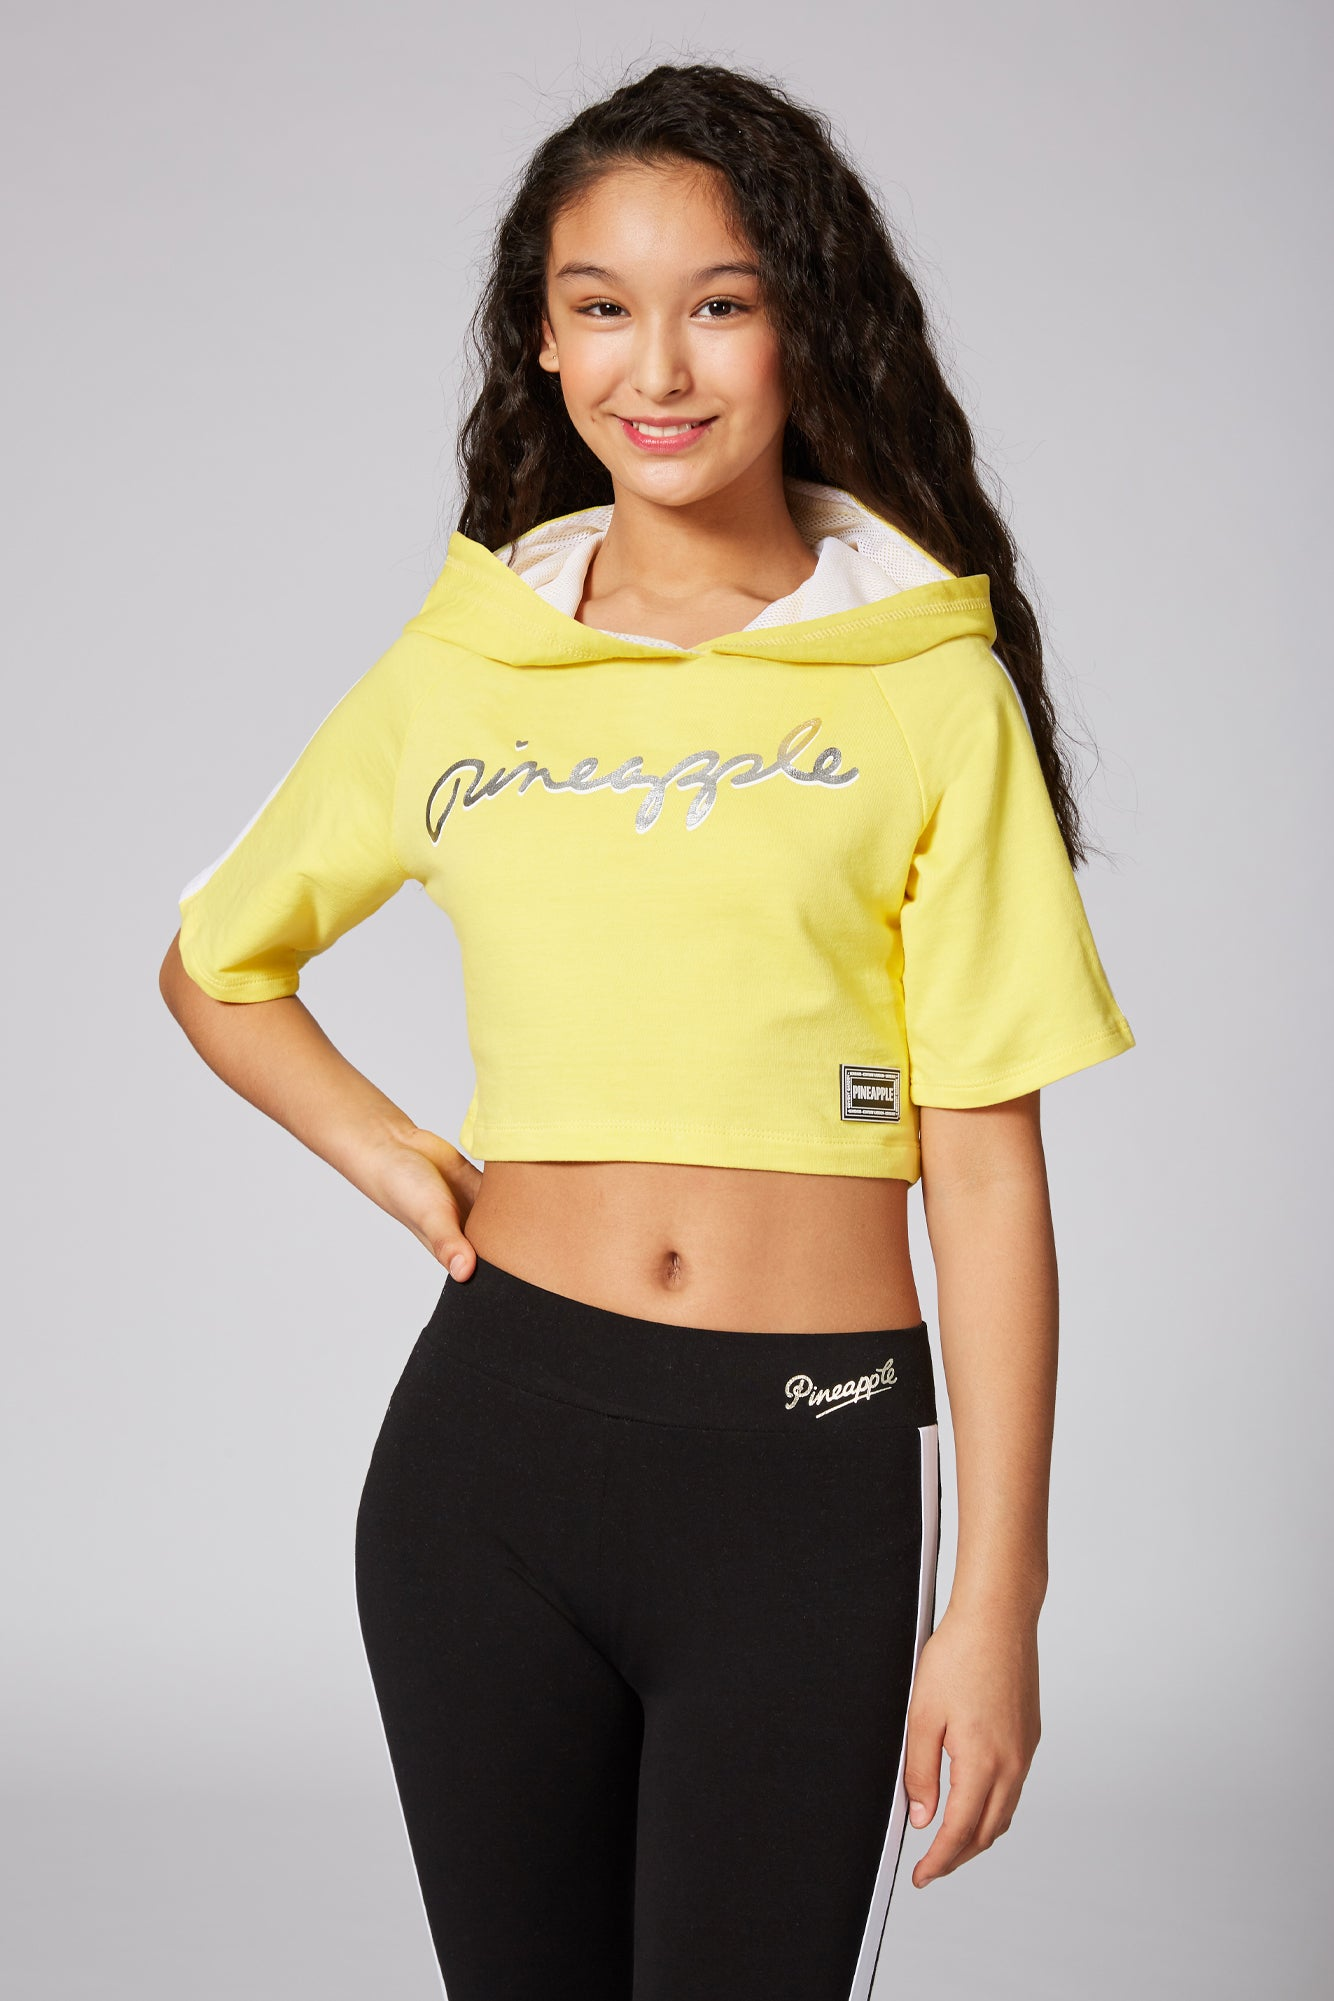 Pineapple Girls' Short Sleeve Crop Top with Hood TH1562CY1